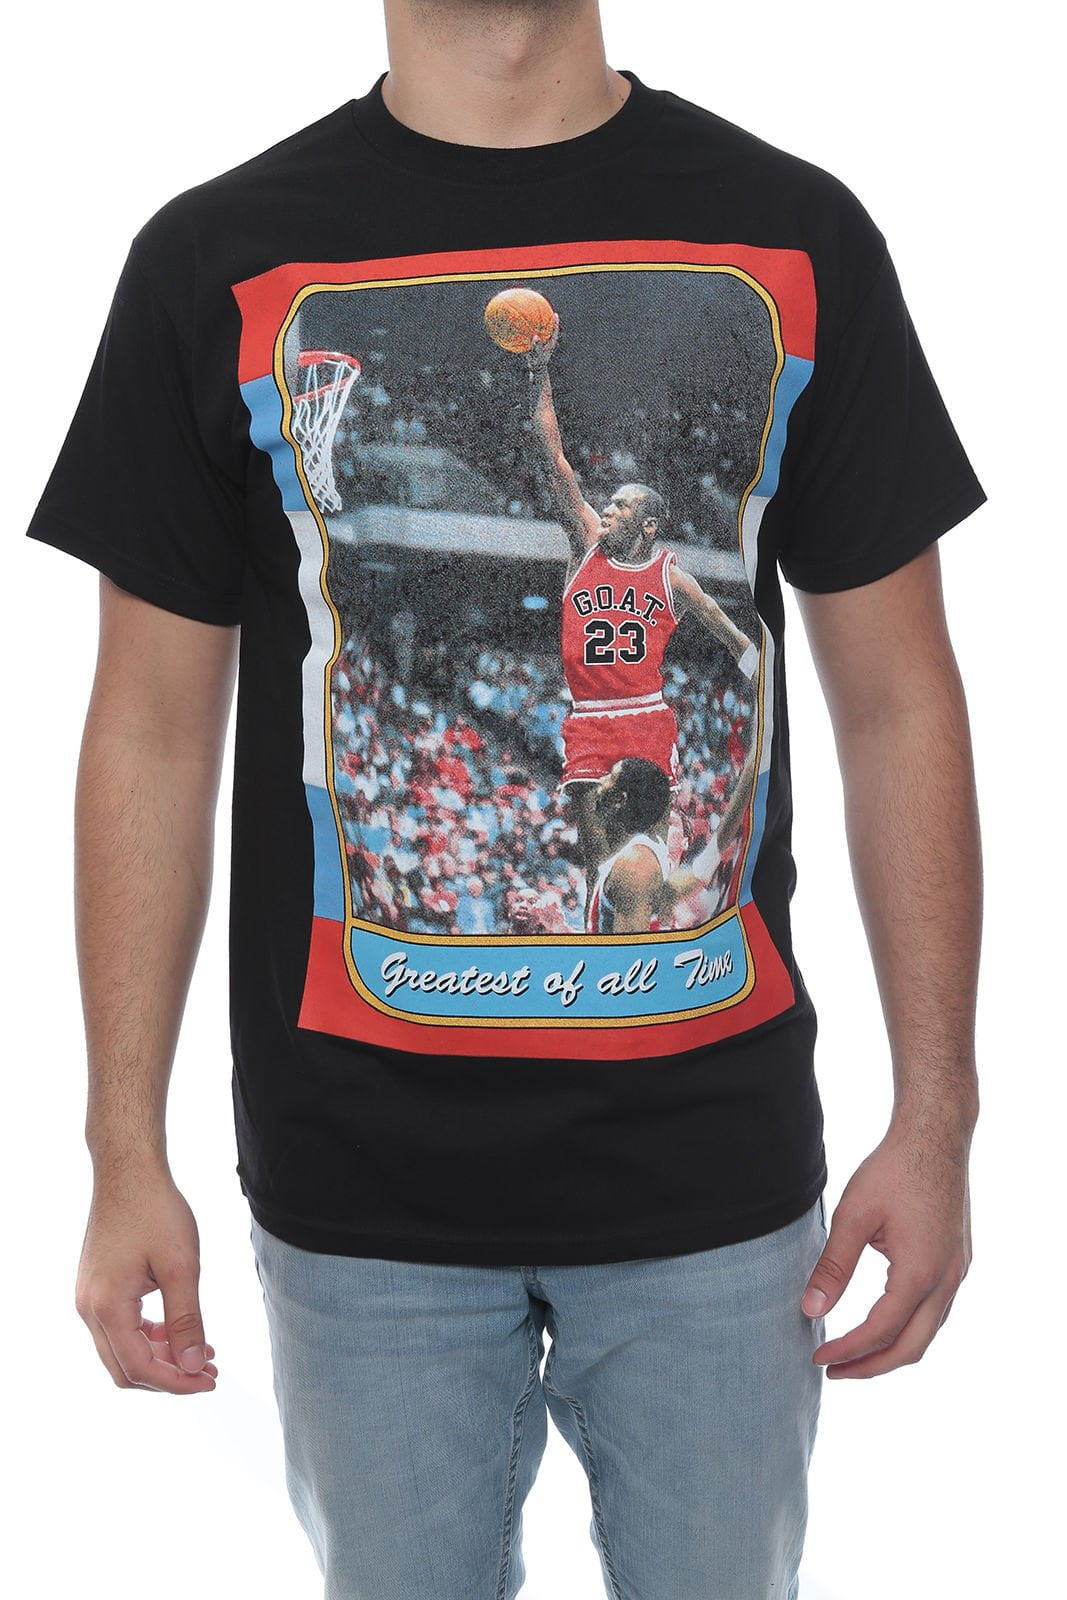 GREATES OF ALL TIME MJ TEE Cotton Authentic Classics Mens S-2XL JORDAN BLACK TEE